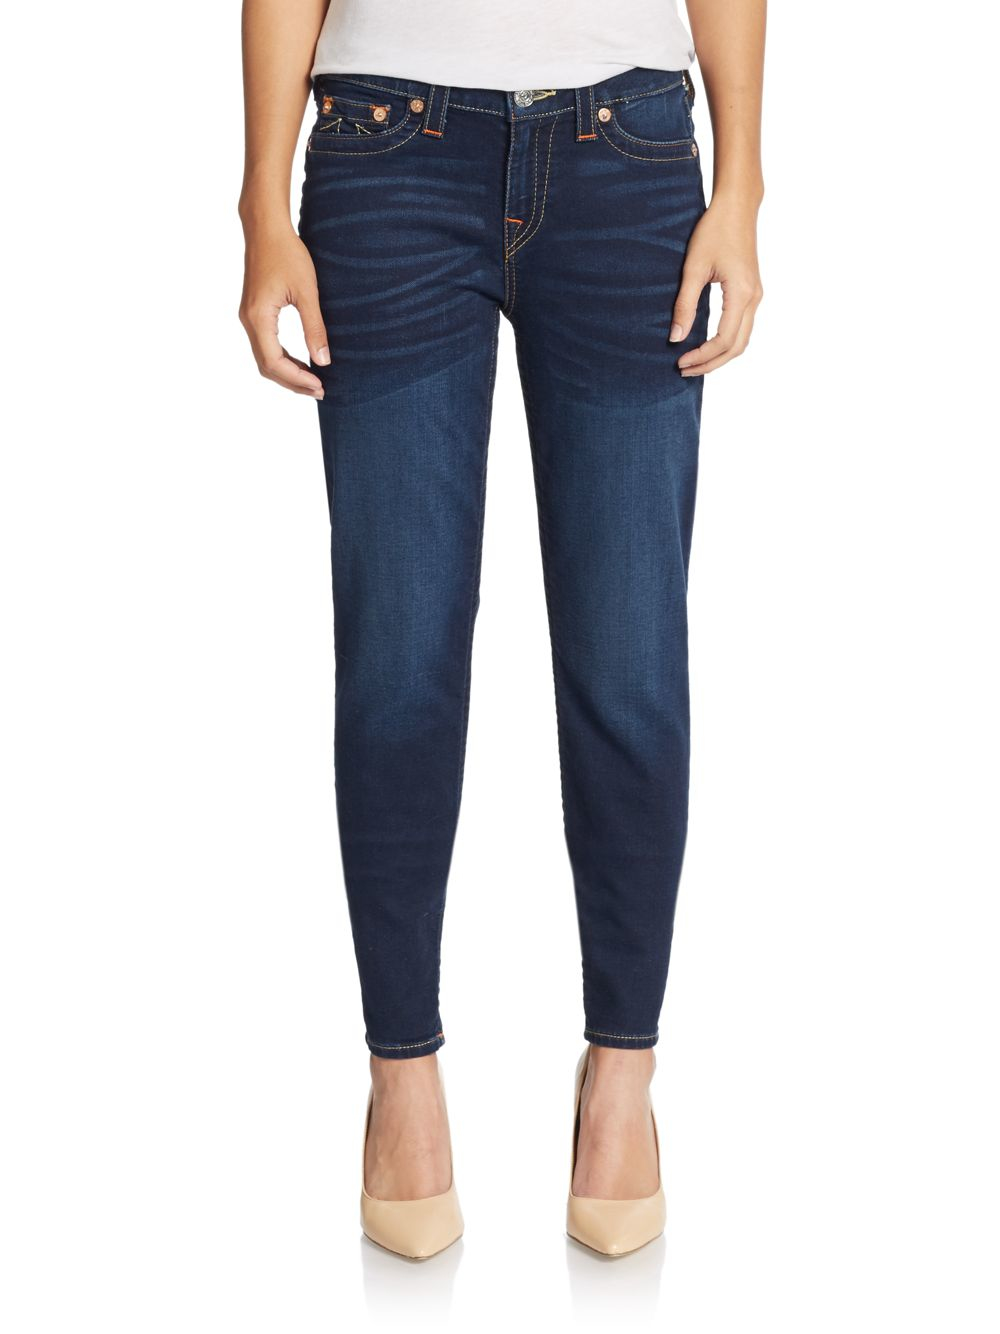 True religion Premium Skinny Jeans in Blue | Lyst